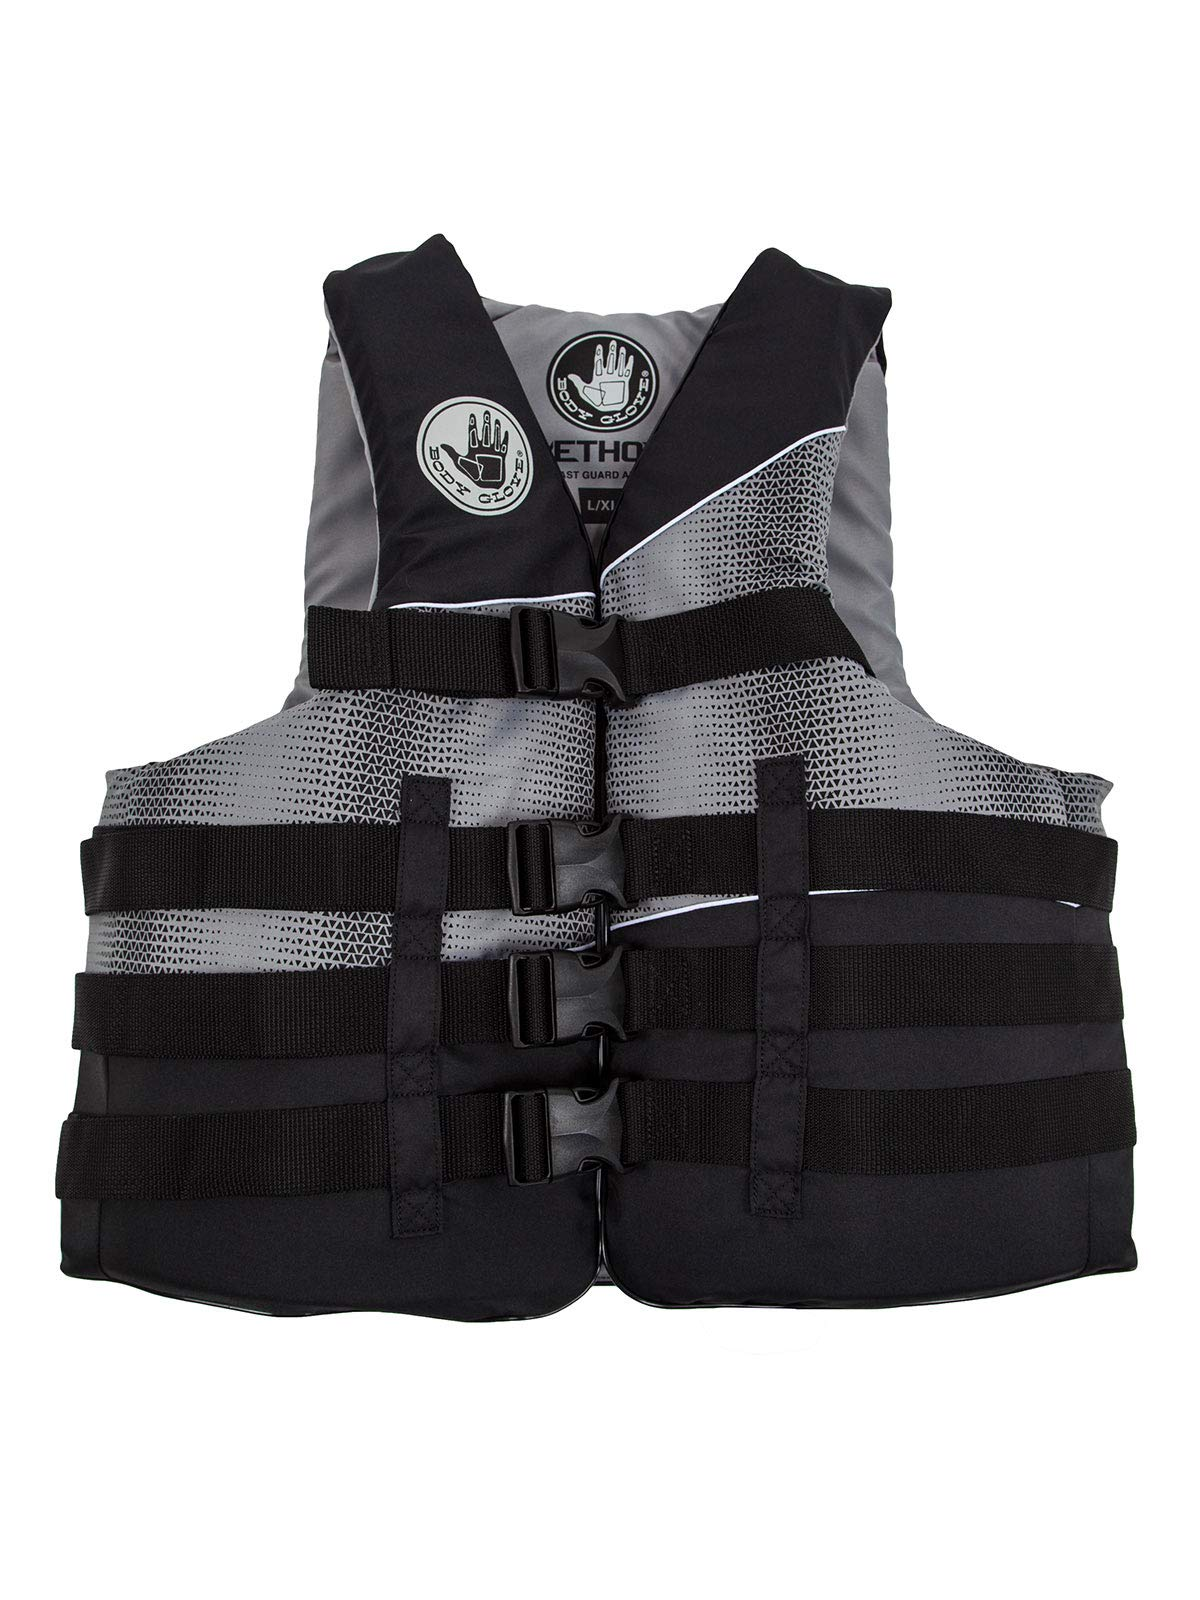 Body Glove Method USCG Approved Nylon Life Vest, X-Small, Black/Silver/Silver/Grey